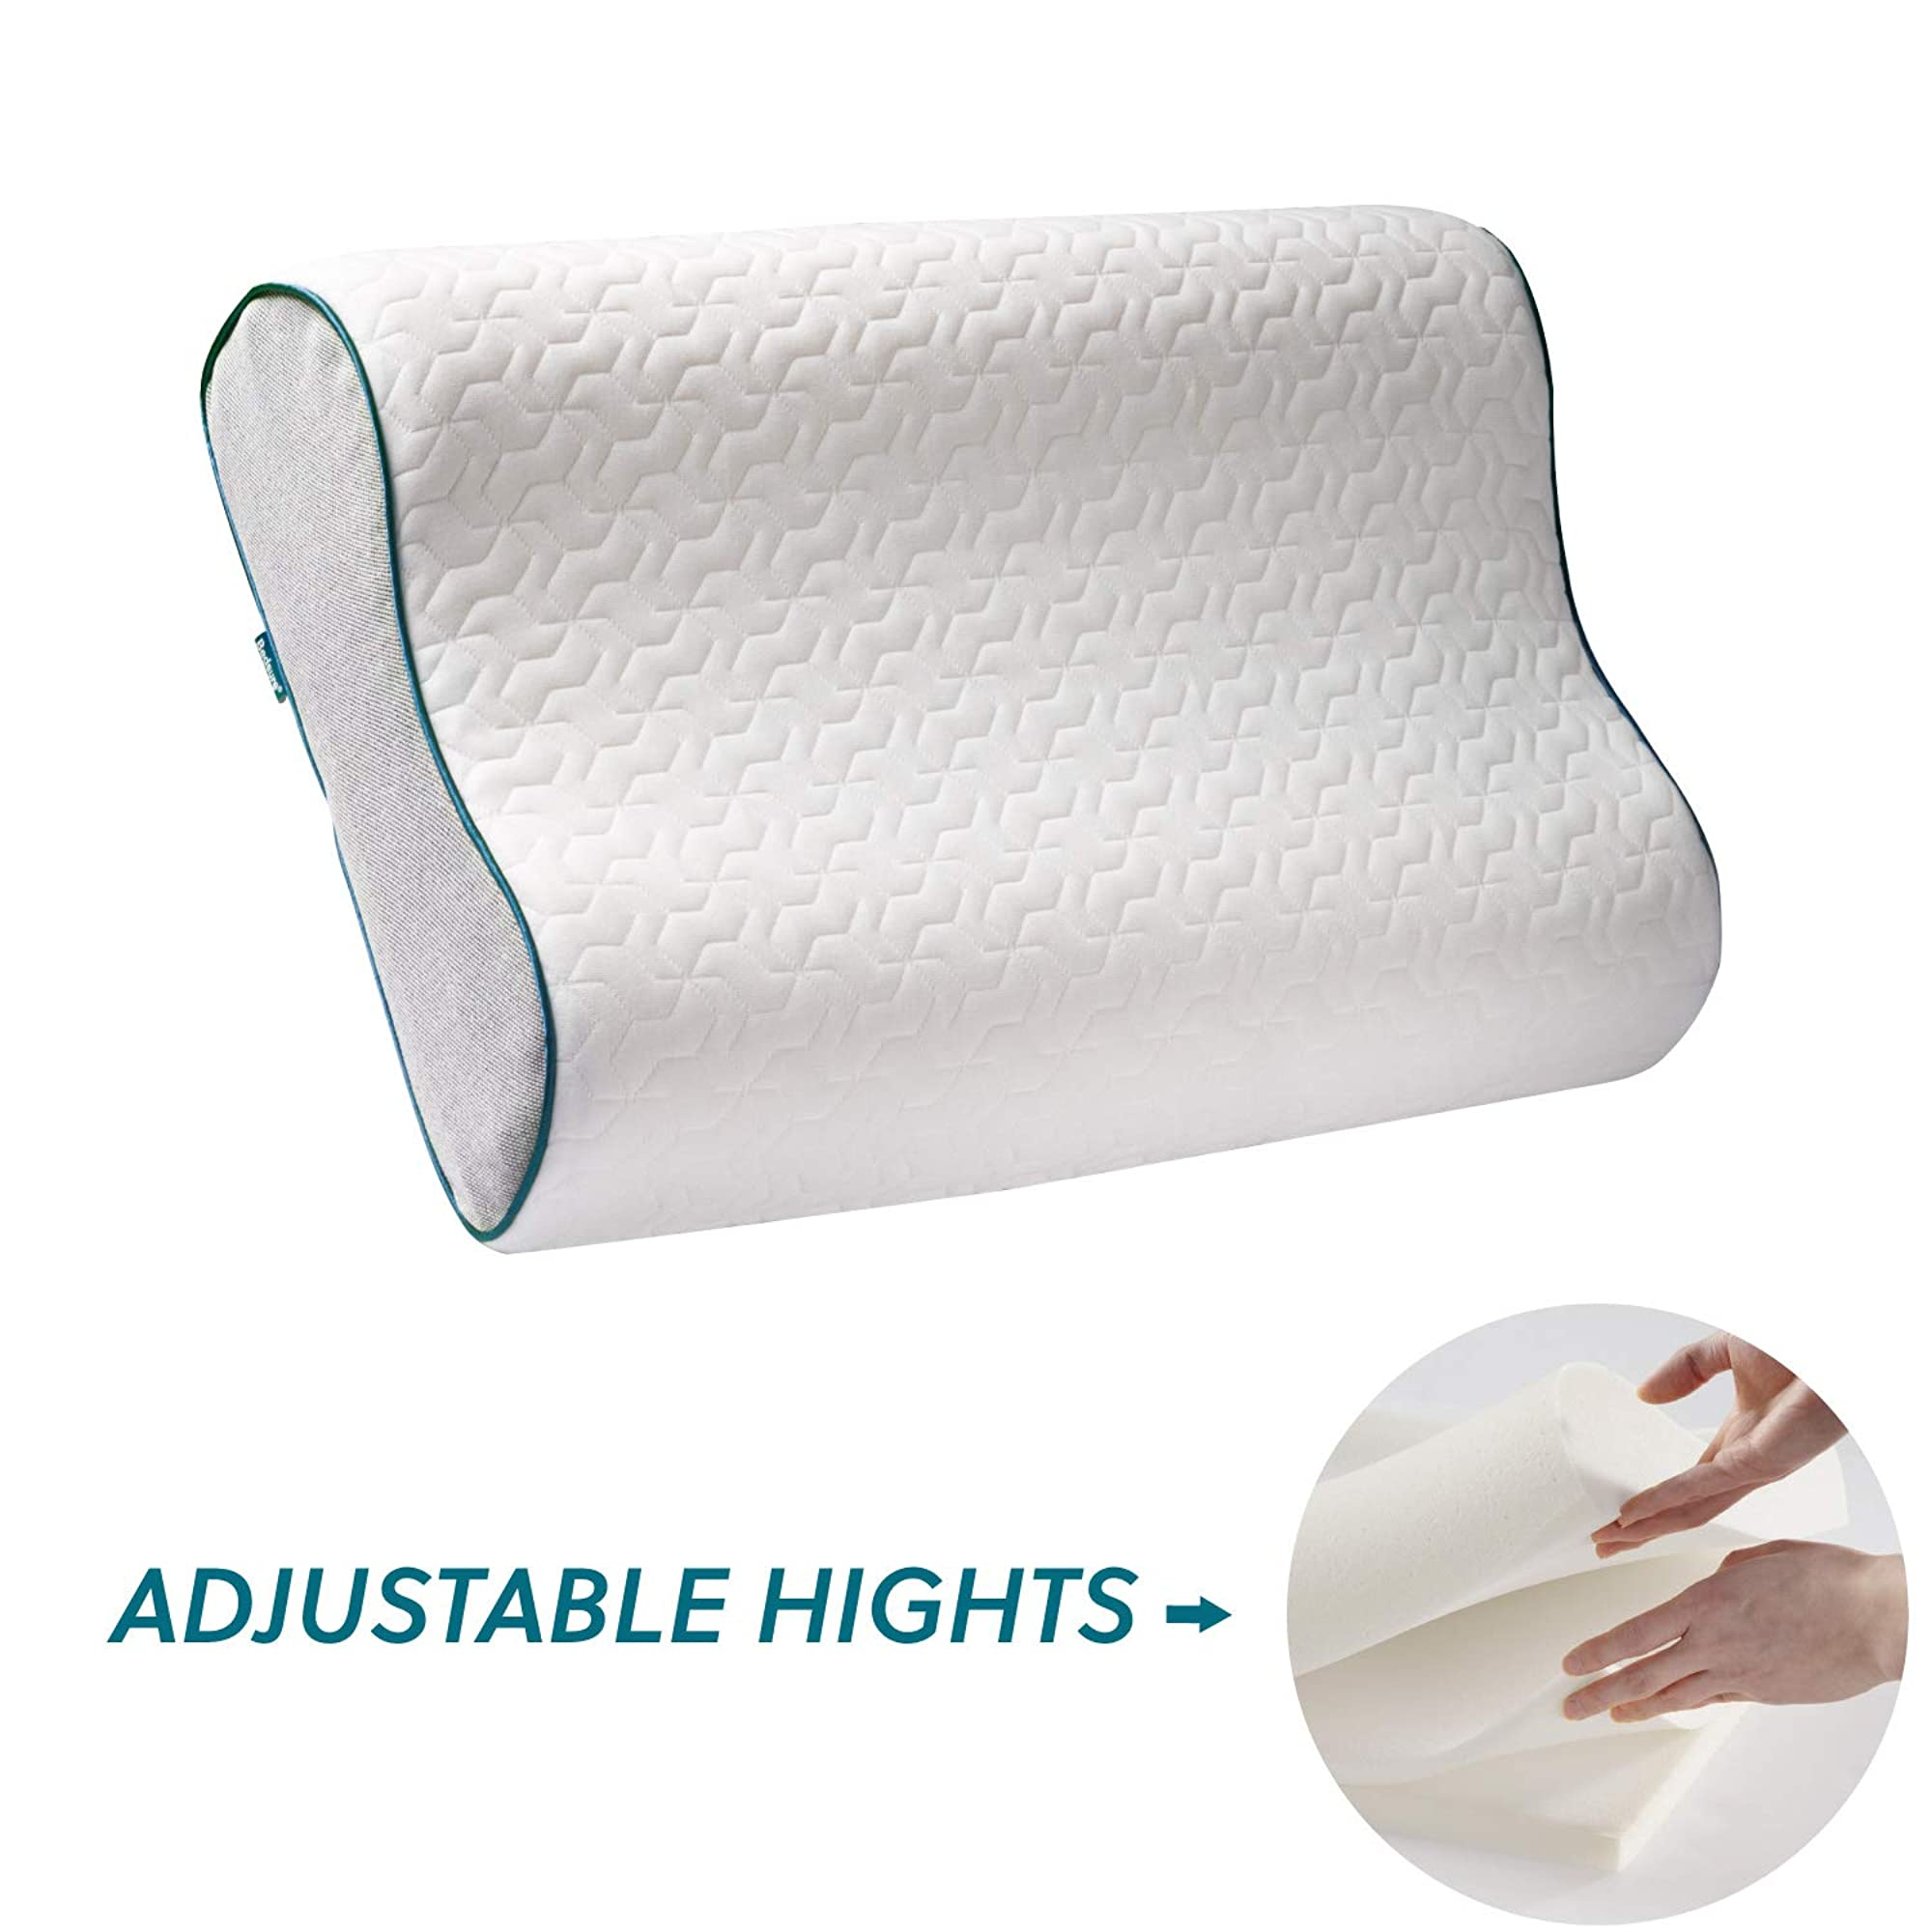 Adjustable Memory Foam Pillow For Sleeping